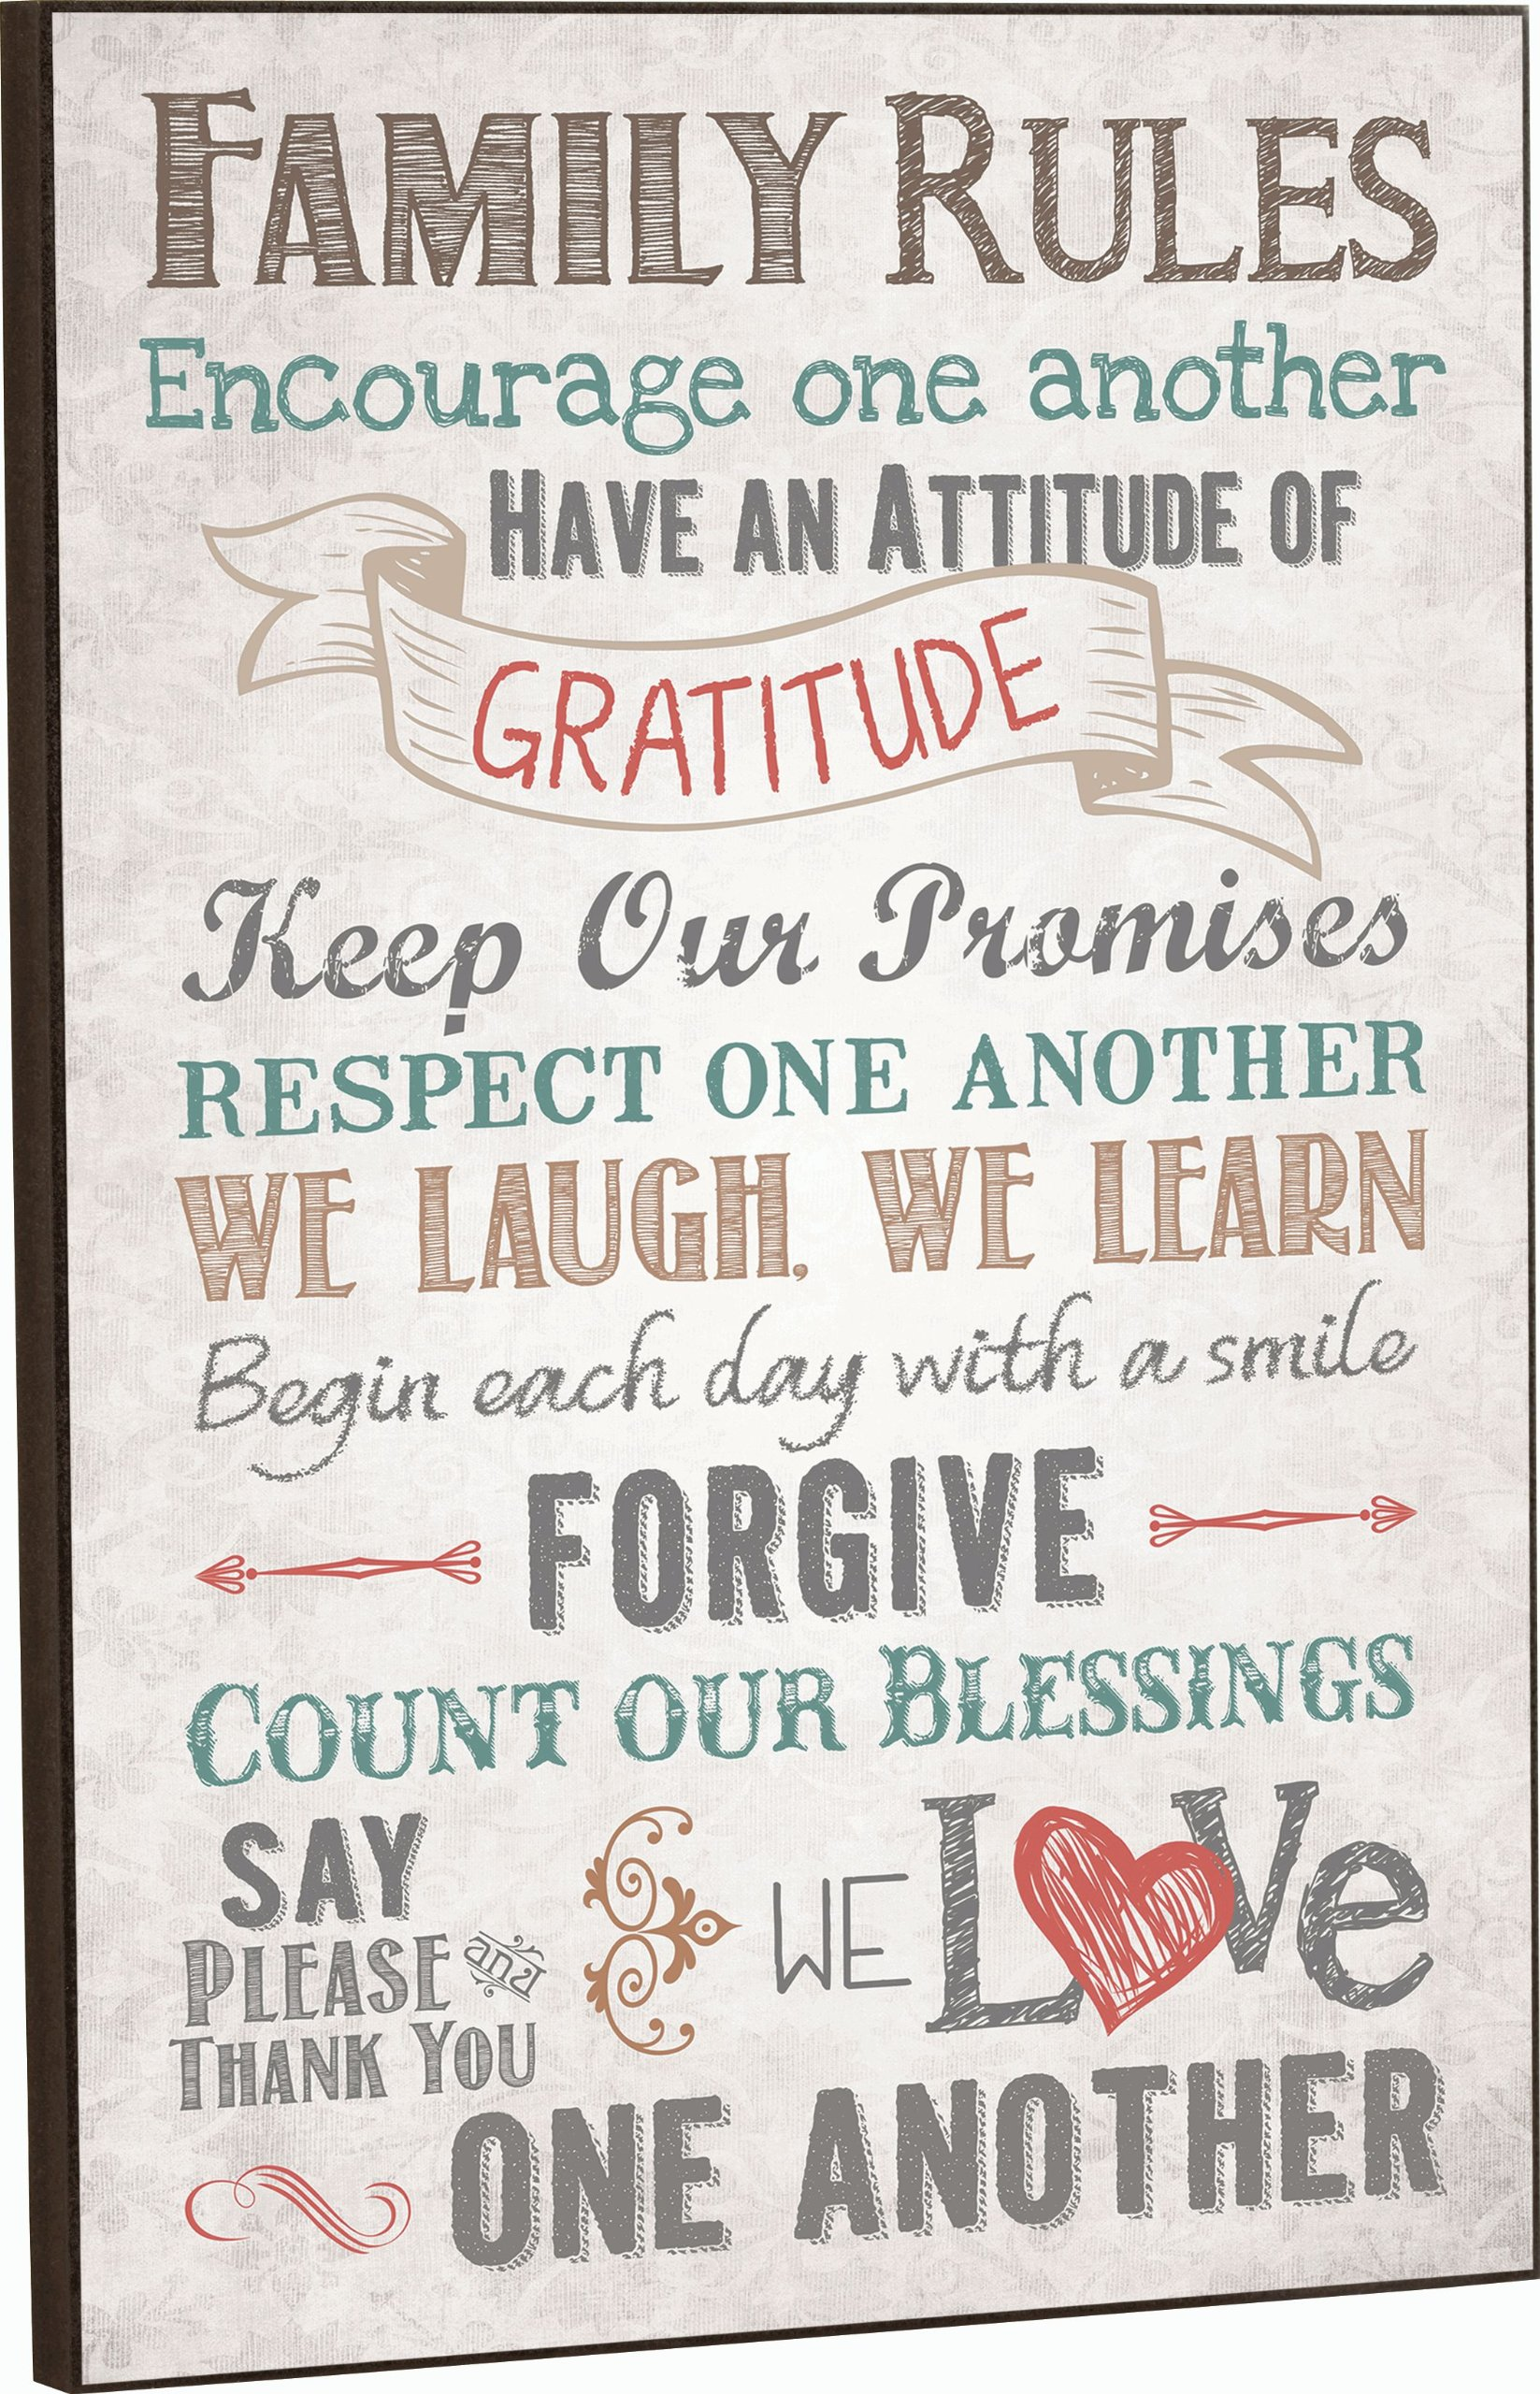 Family Rules Decorative Wall Plaque - 12.0'' x 16.0'' - Made in USA